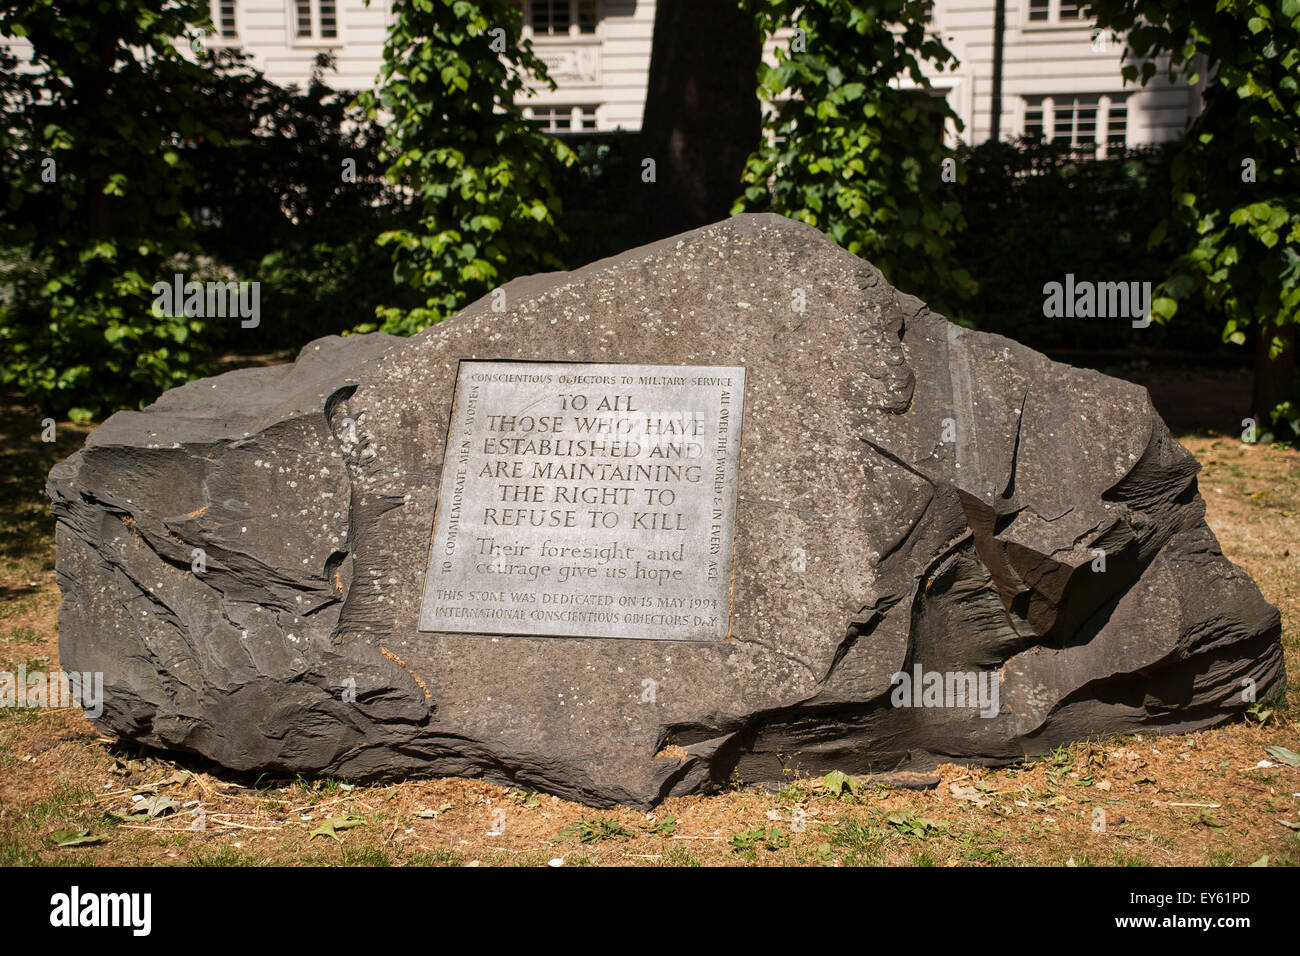 England, London, Conscientious Objectors' memorial - Stock Image